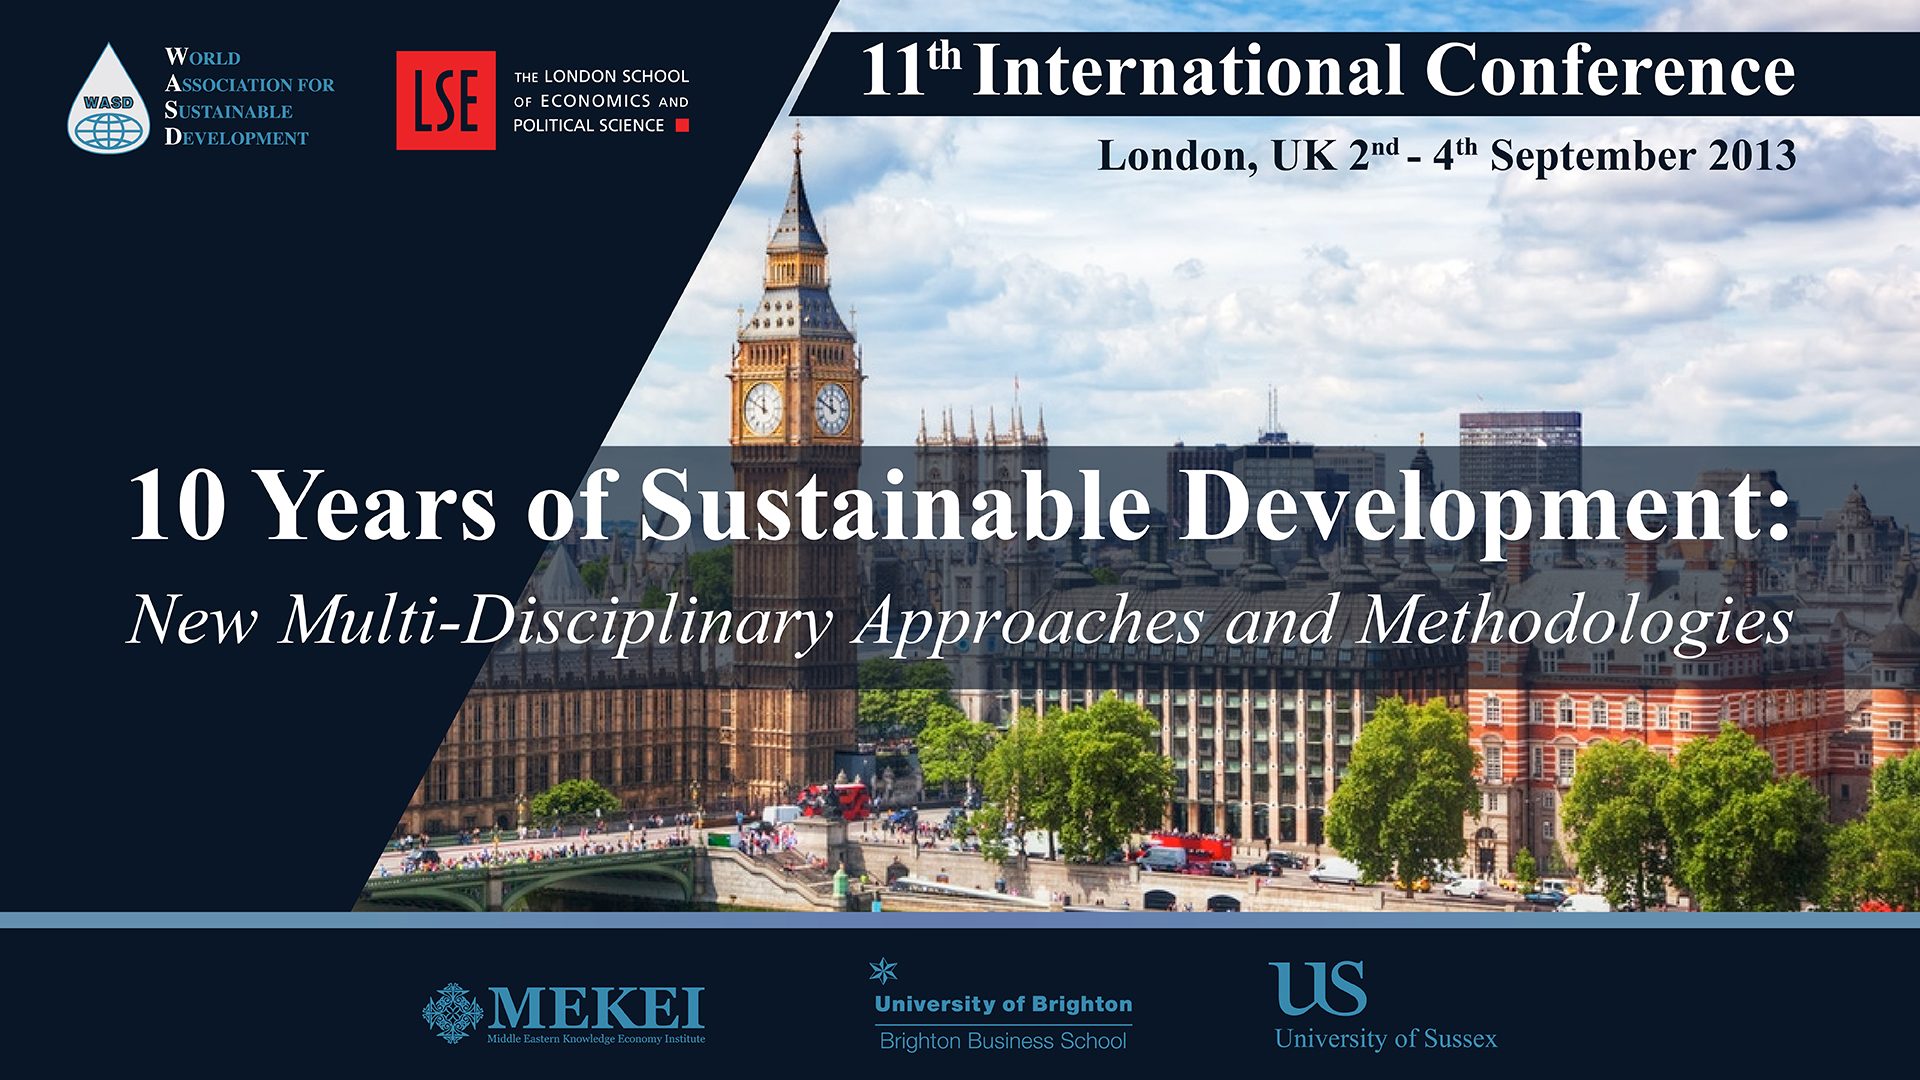 11th Sustainability Conference, London, UK 2013<div style='clear:both;width:100%;height:0px;'></div><span class='cat'>Sustainability Conferences</span>